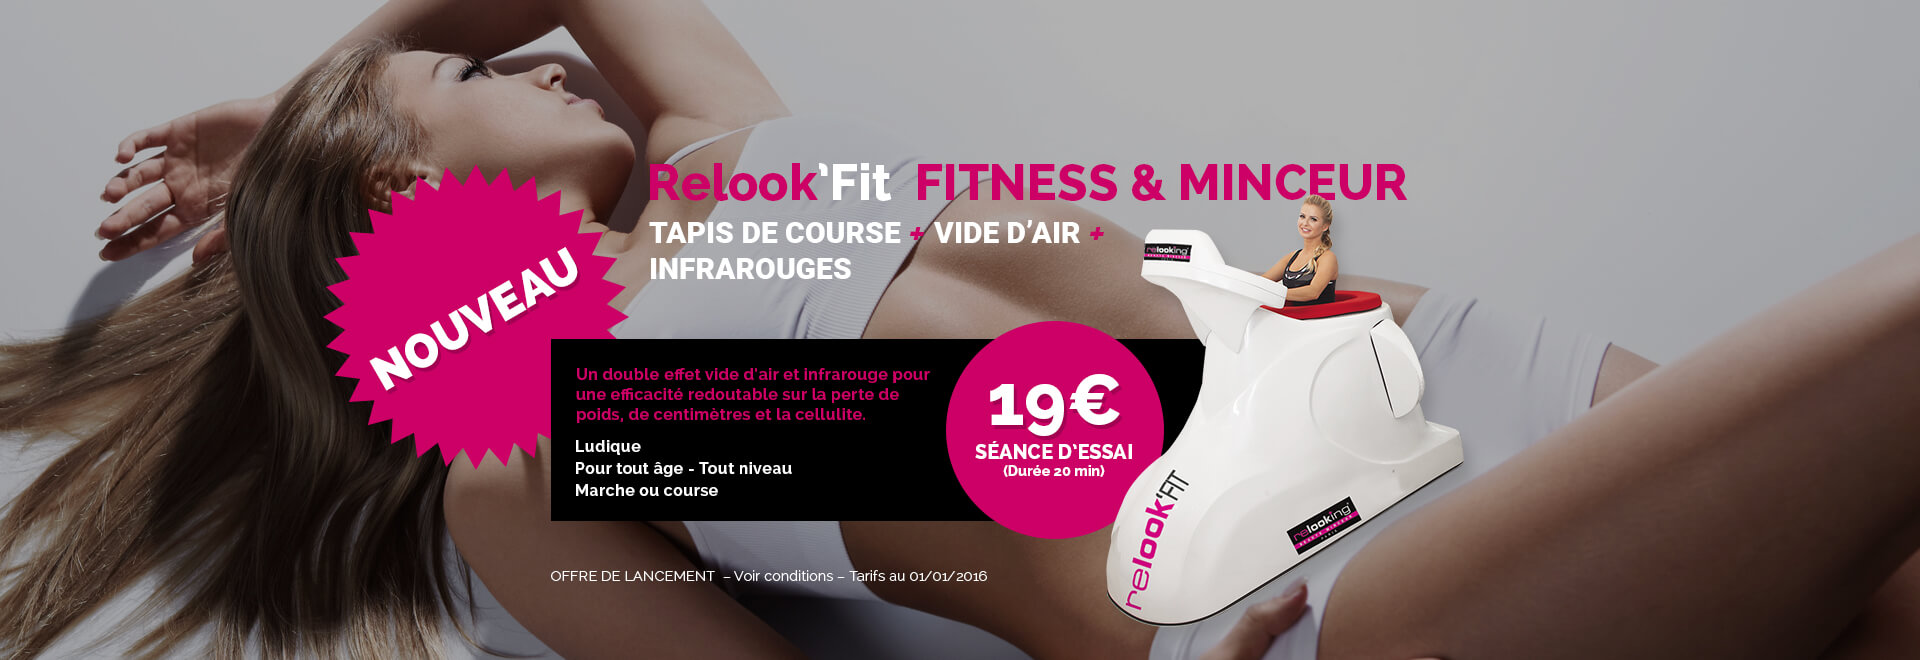 relookfit_accueil_080217